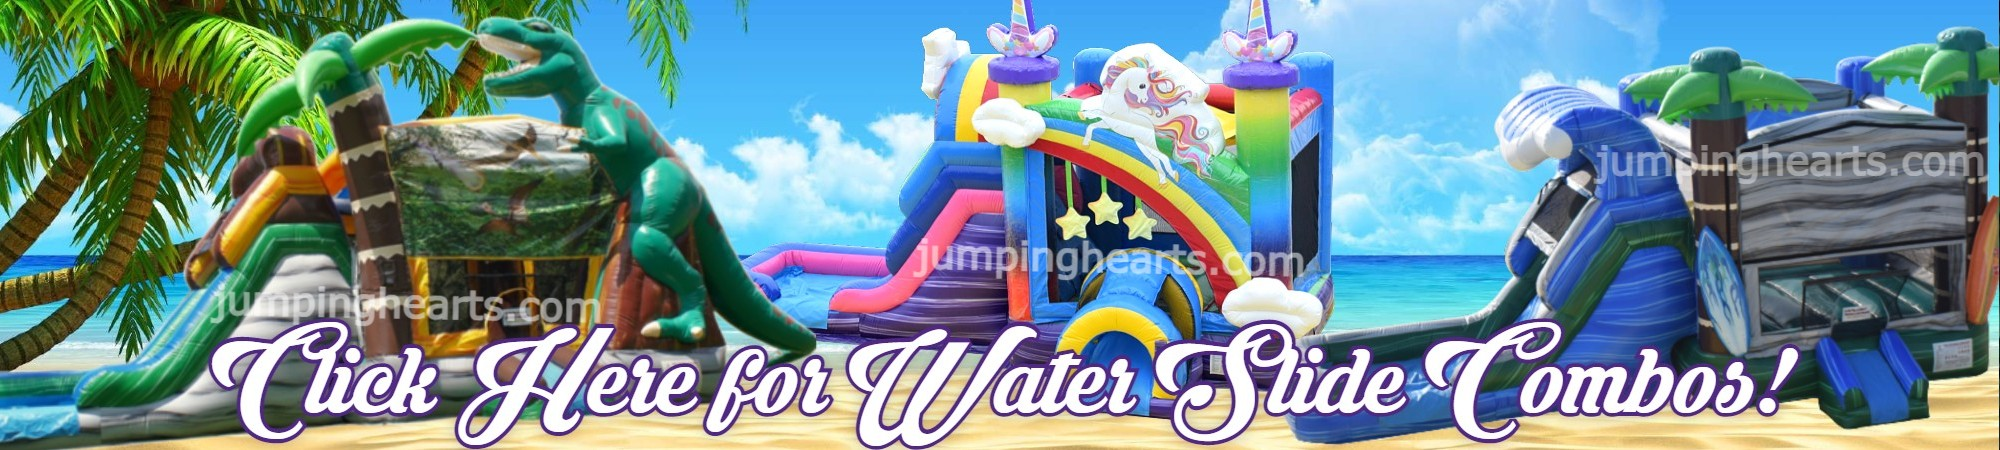 bounce house rentals Nashville   Jumping Hearts Party Rentals